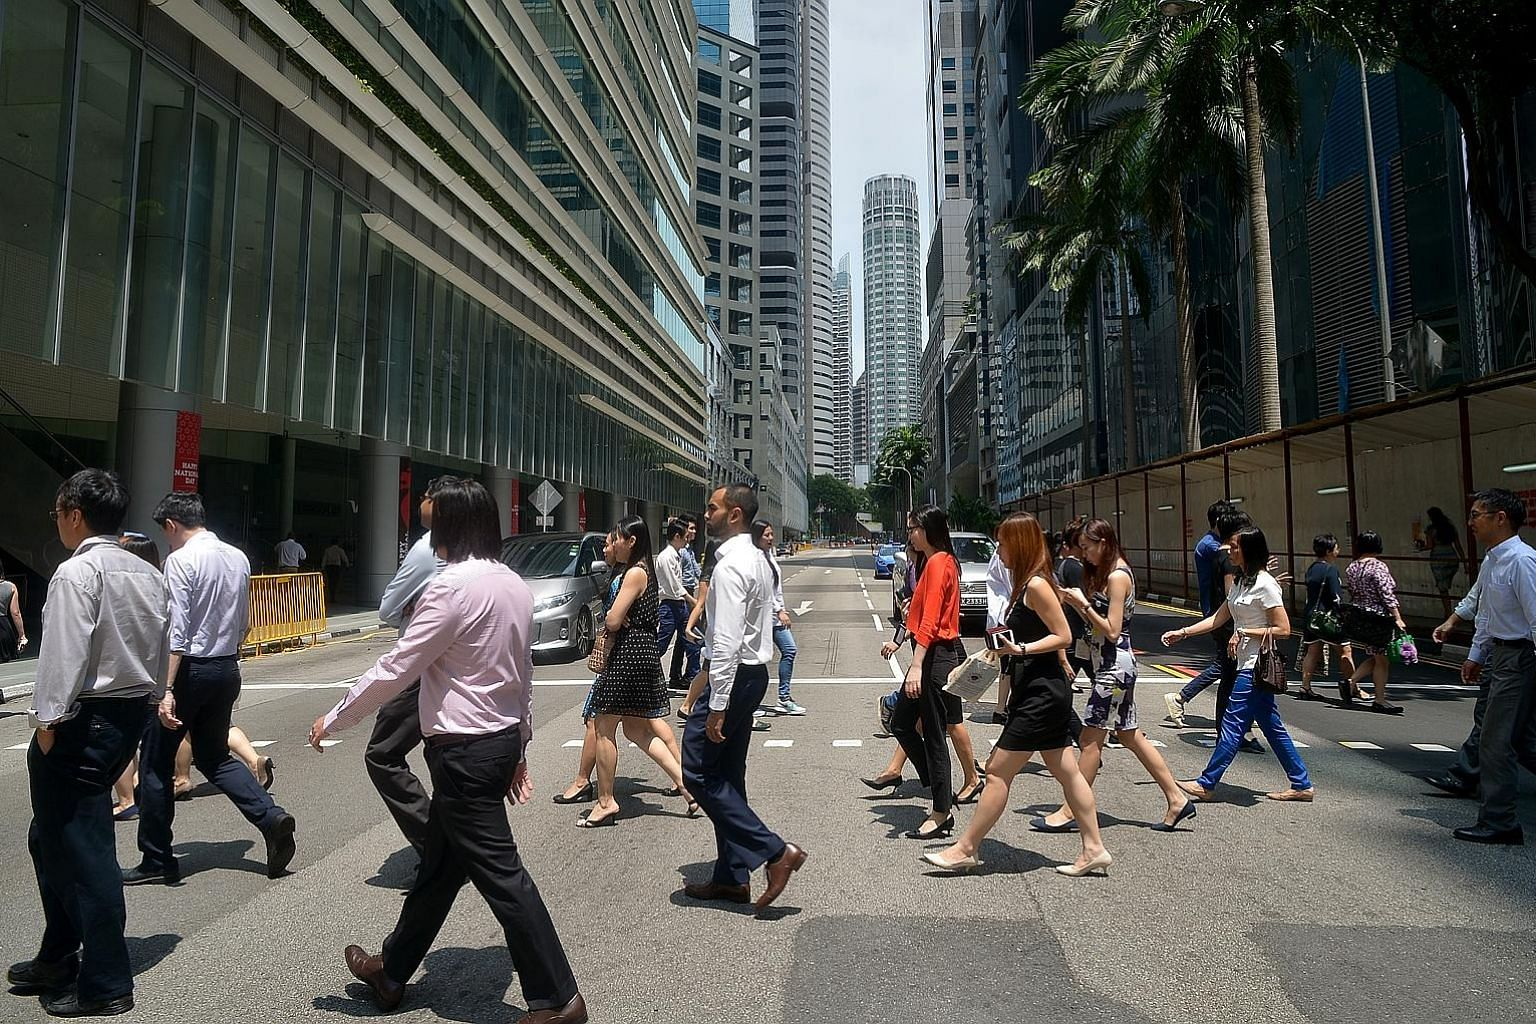 The new Workforce Singapore statutory board will help Singapore face the challenges of an ageing local workforce growing at a slower pace amid greater global uncertainty and disruptive technologies.